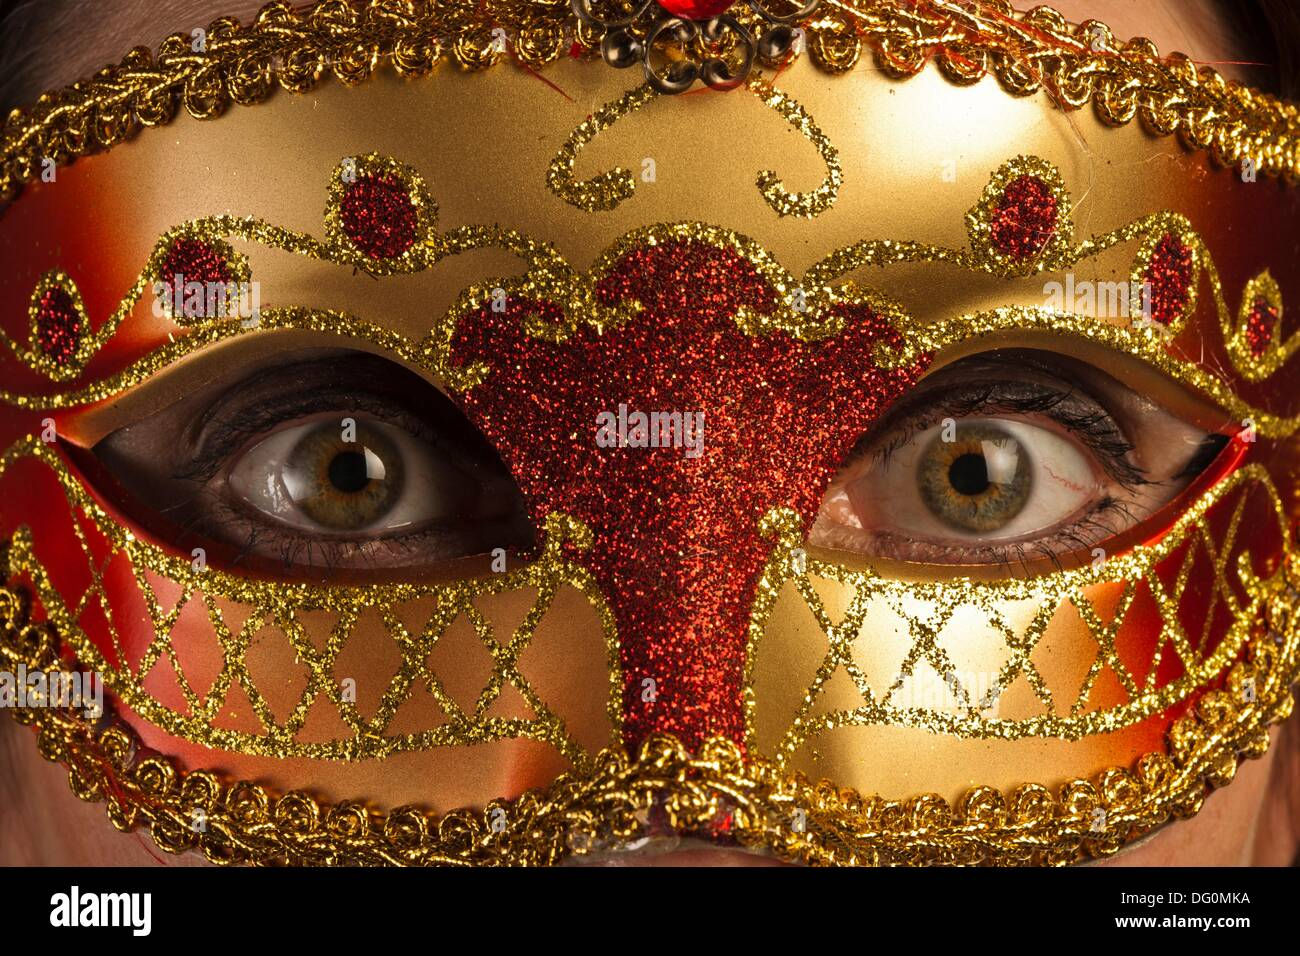 Wide opened eyes of a woman behind a venetian mask - Stock Image